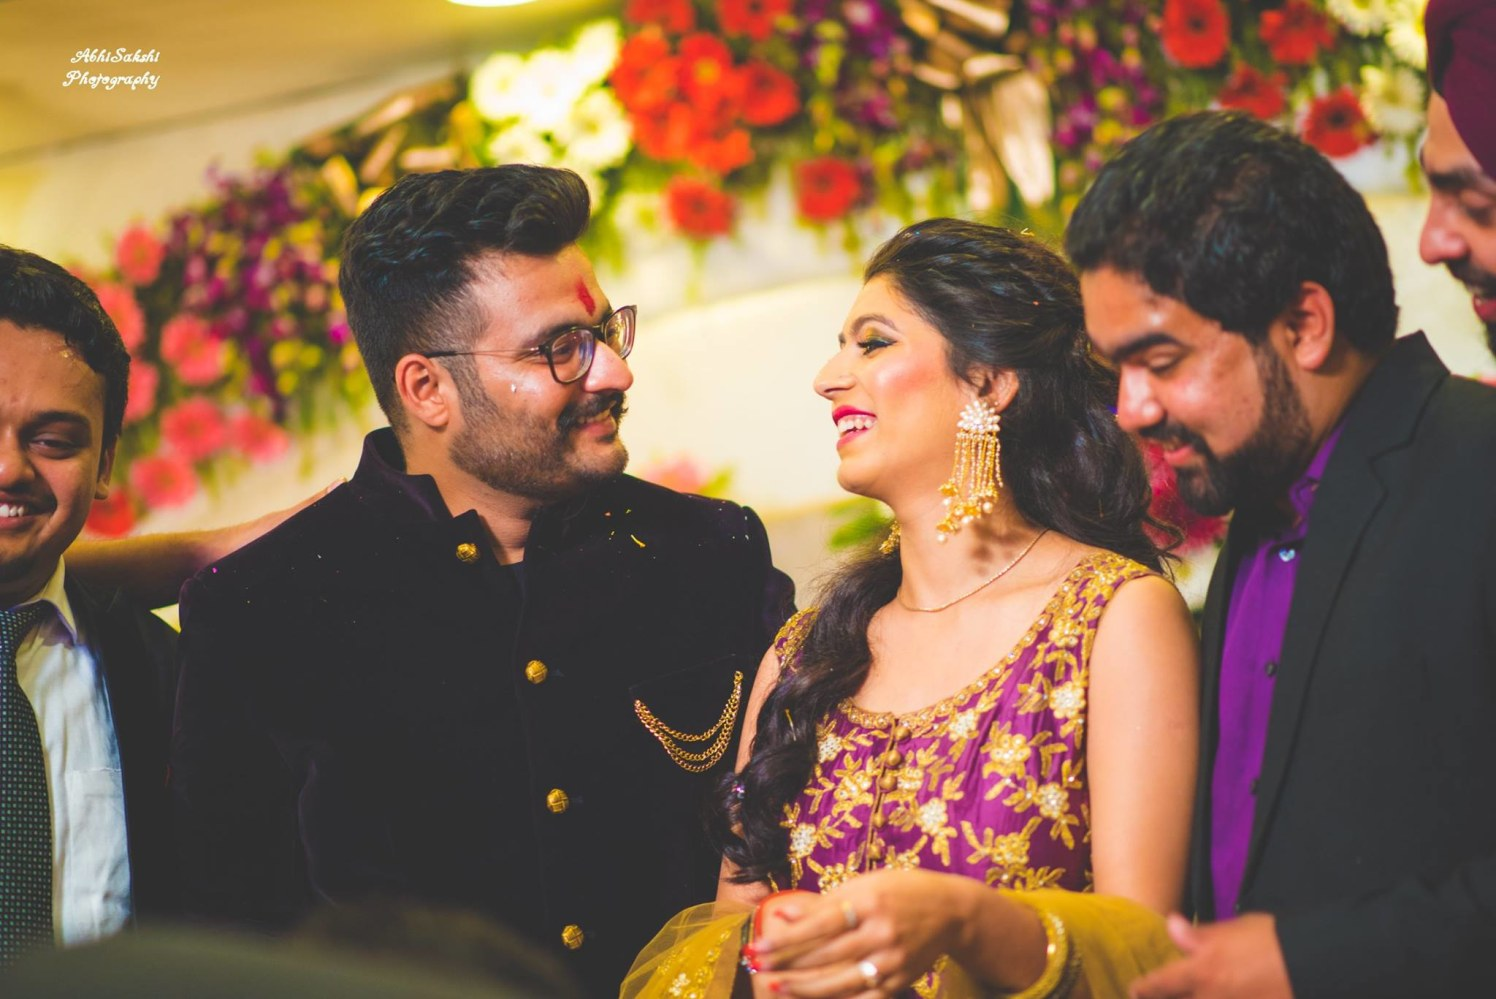 Mesmerized by each other by AbhiSakshi Photography Wedding-photography | Weddings Photos & Ideas